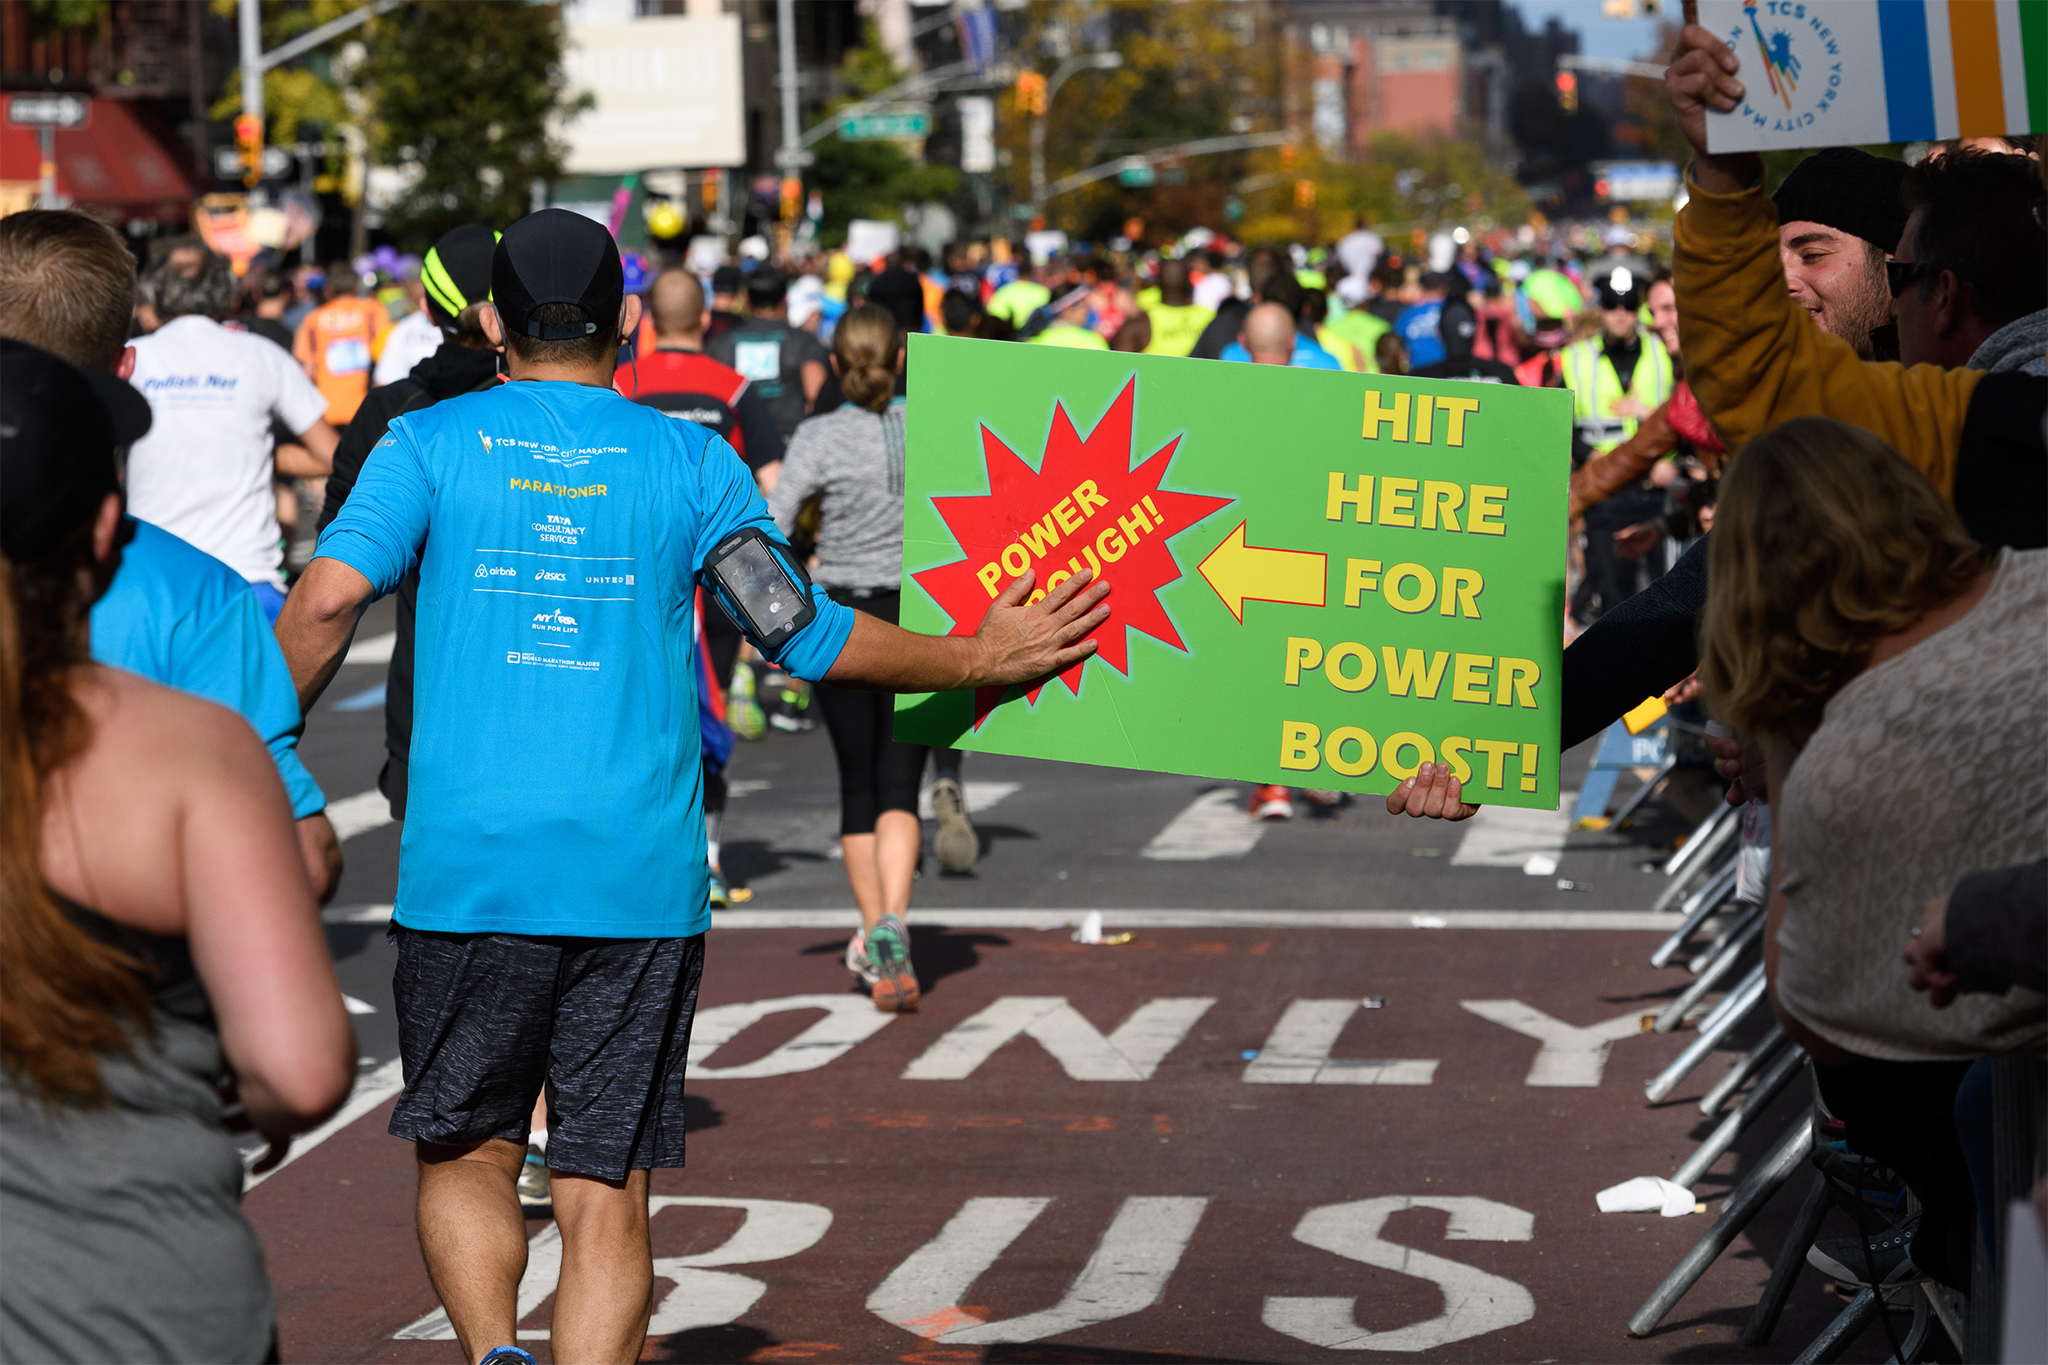 33 funny marathon signs from the 2016 NYC Marathon